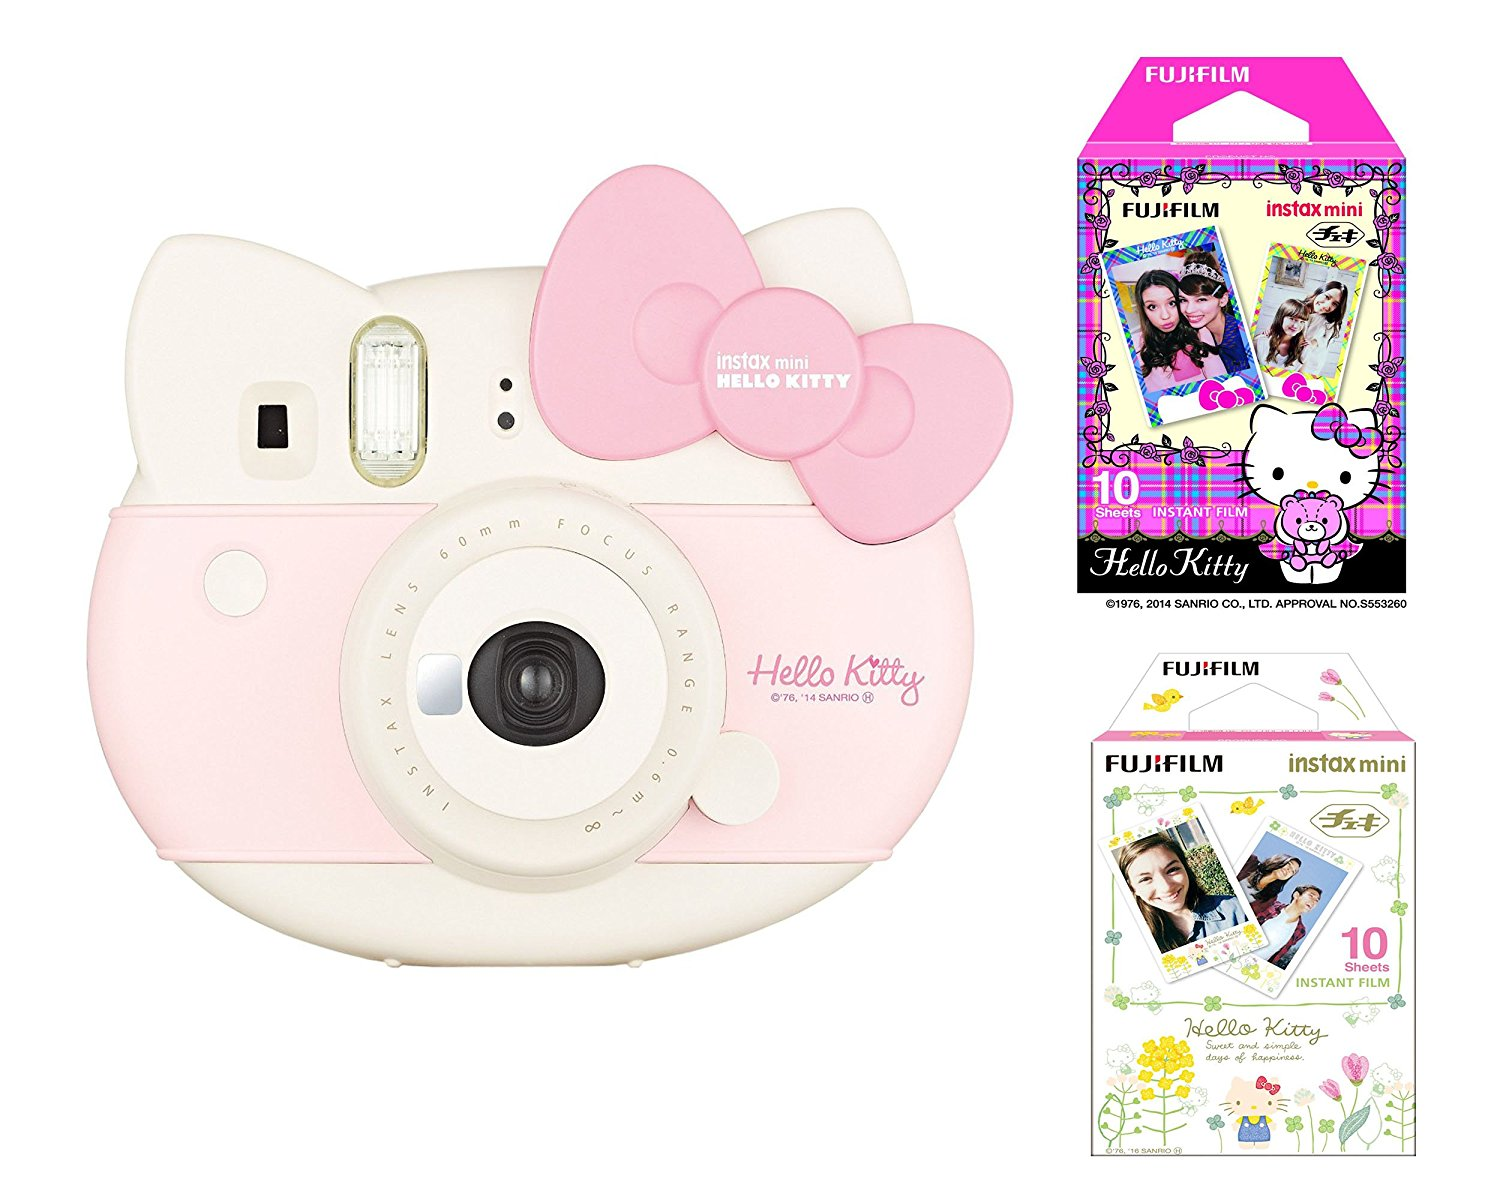 Fujifilm Fuji Instax Mini Hello Kitty Sanrio Instant Film Camera Polaroid Photos 2016 Limited Edition Pink with Kitty Film 20Sheet and Card holder Affordable bundle set